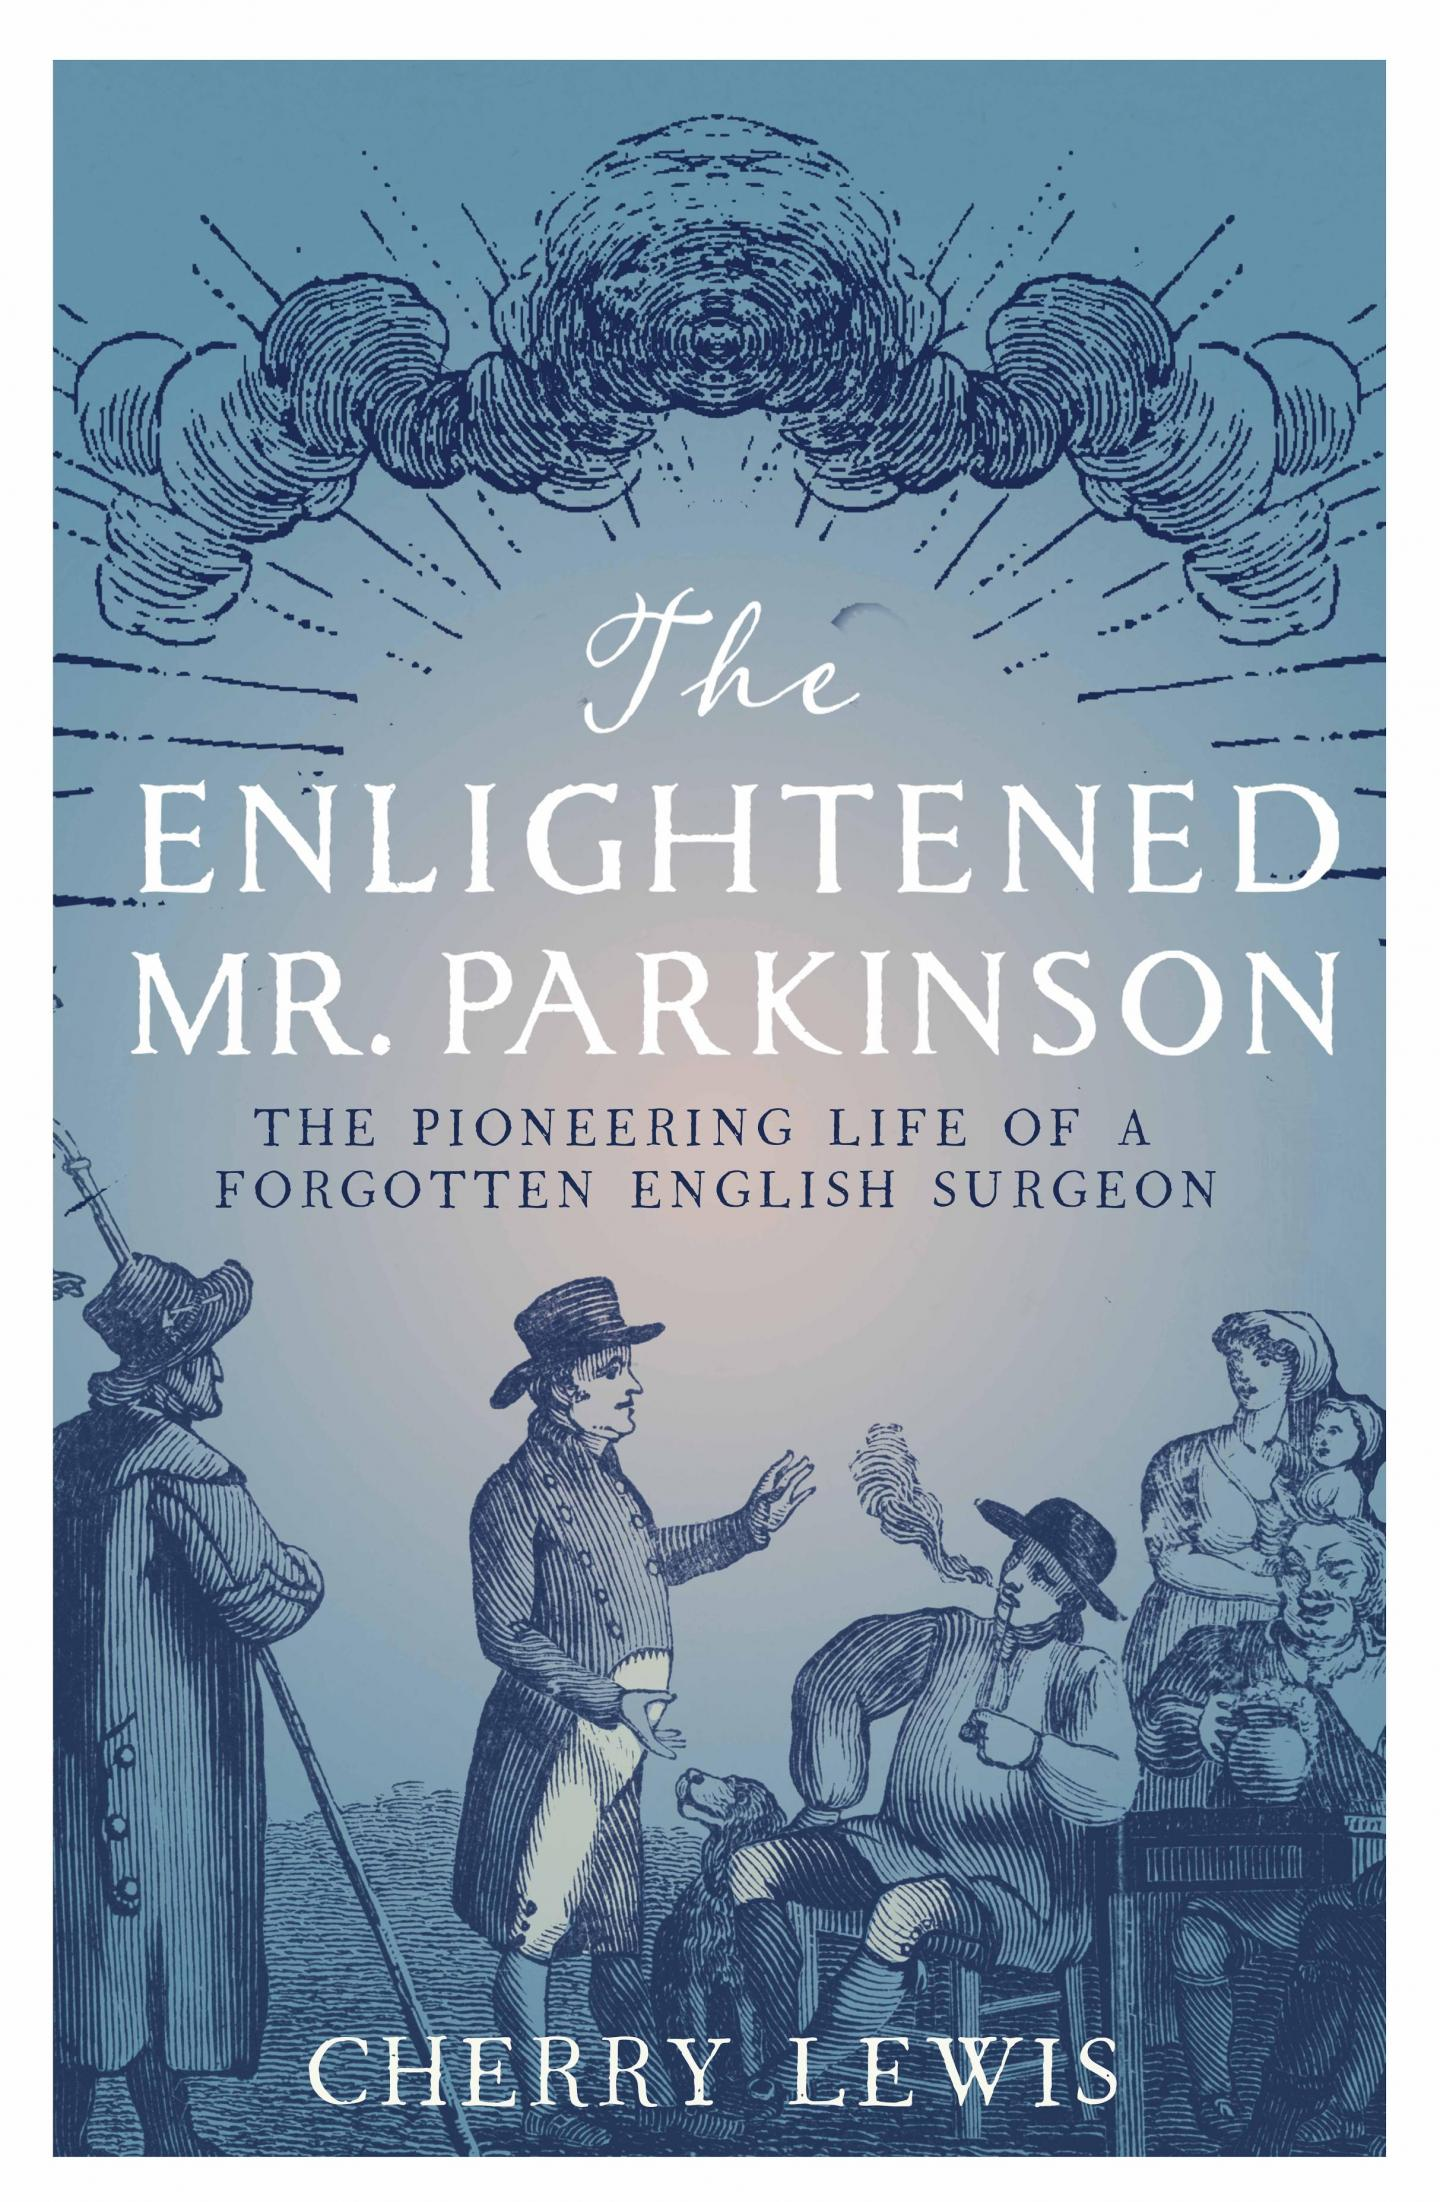 The front cover of 'The Enlightened Mr Parkinson' by Cherry Lewis